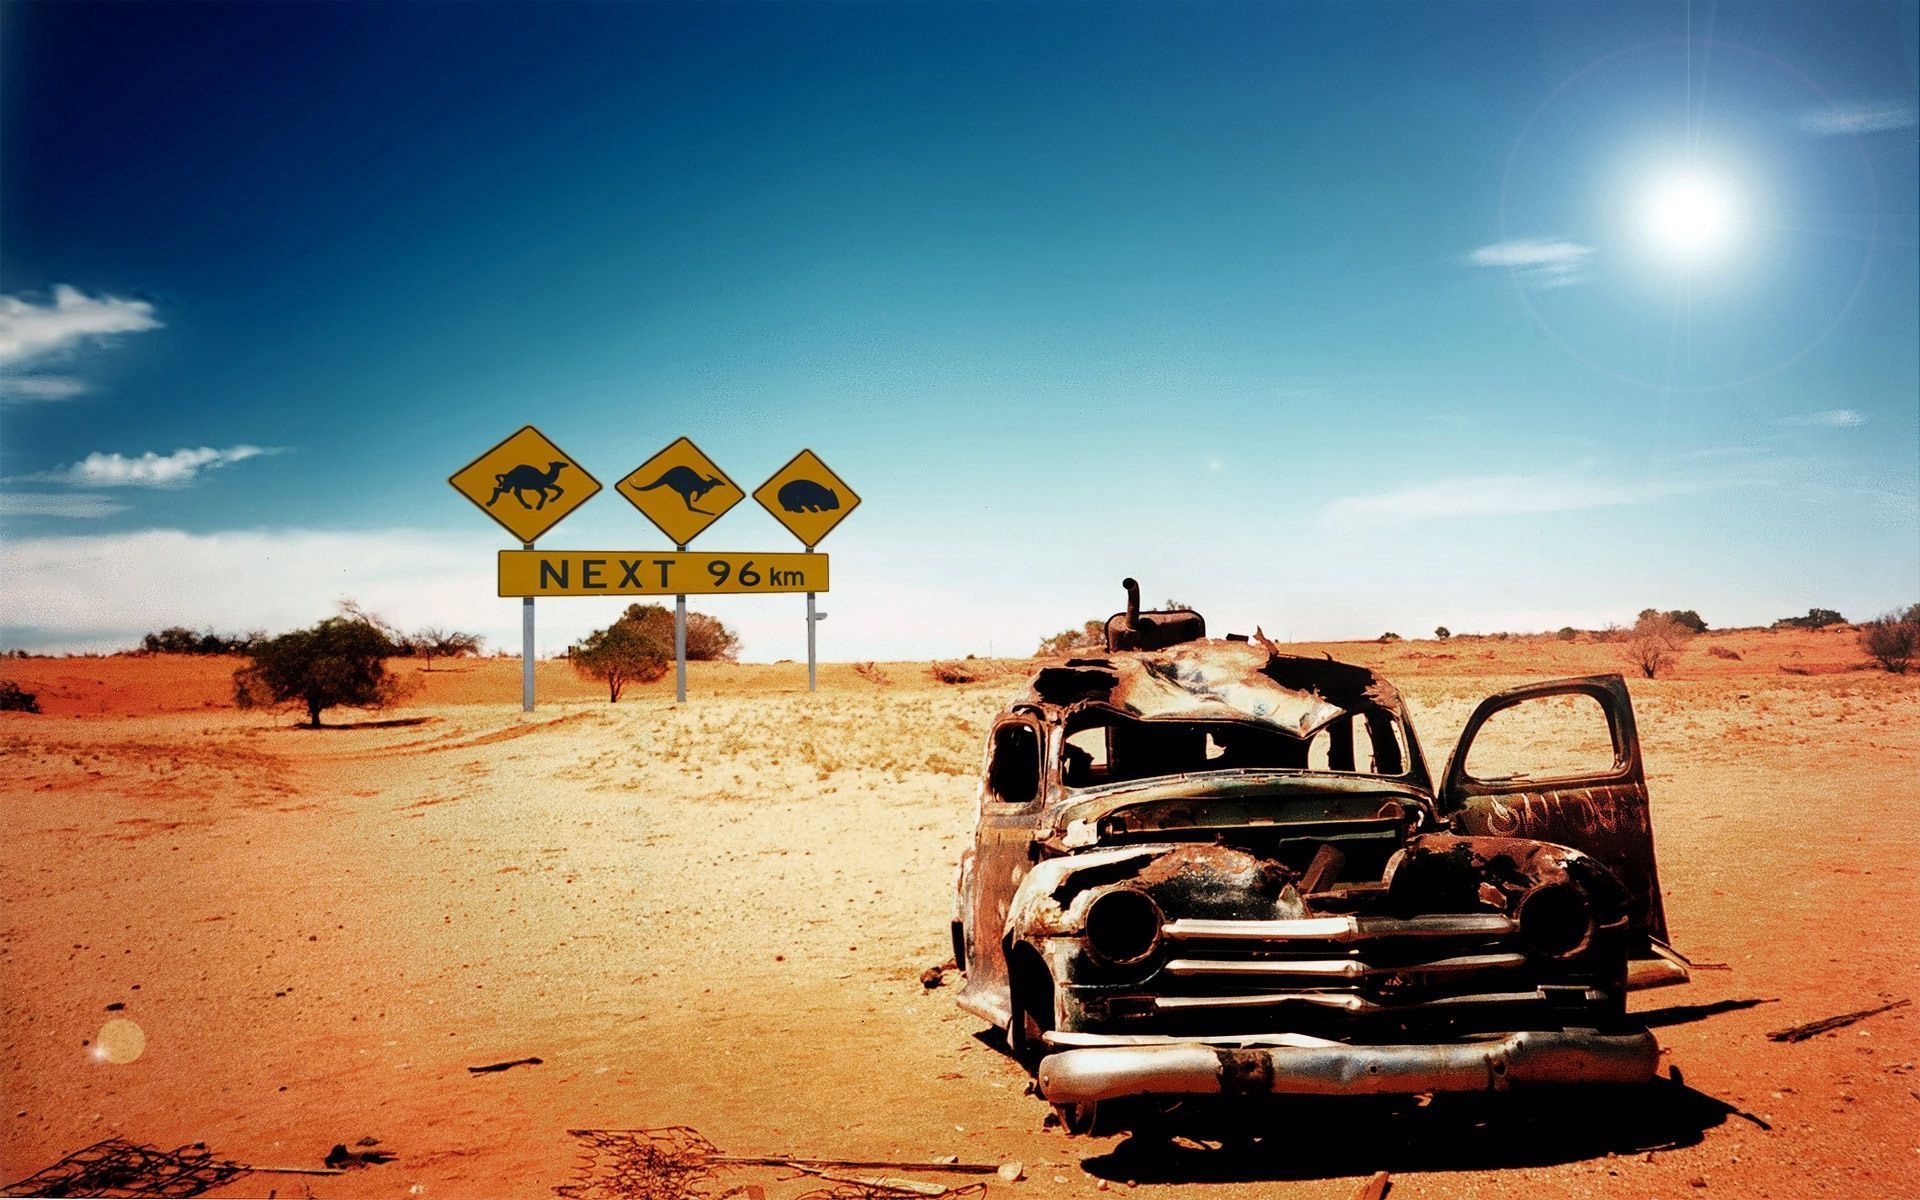 Australian Outback Wallpaper Abandoned Car Abandoned Places Old Abandoned Cars